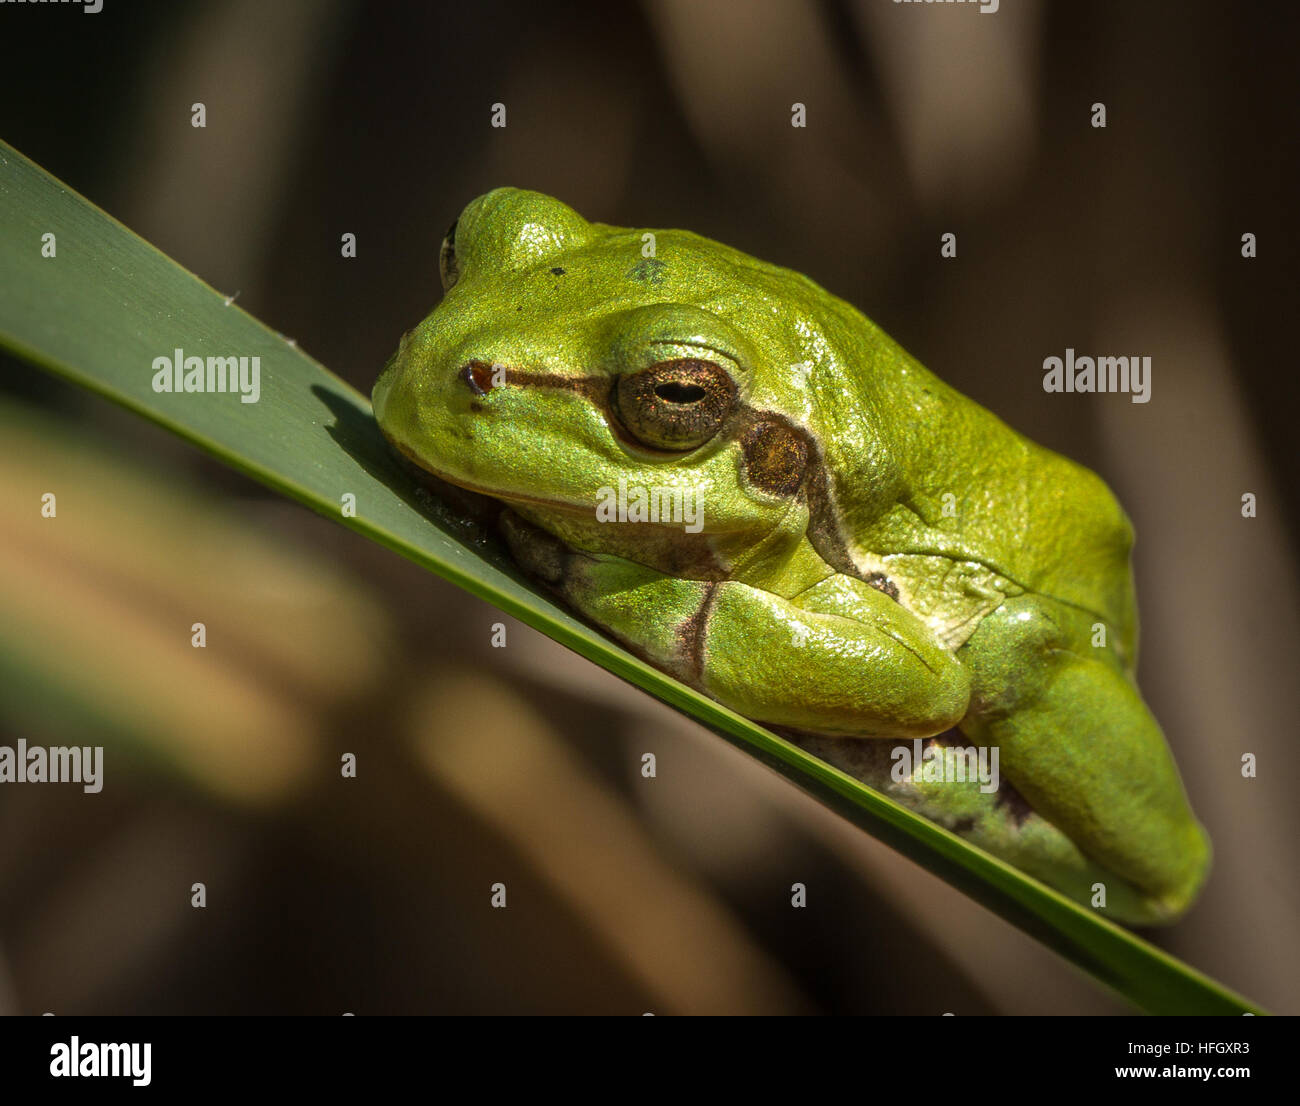 Thoughtful Frog Stock Photos & Thoughtful Frog Stock Images - Alamy